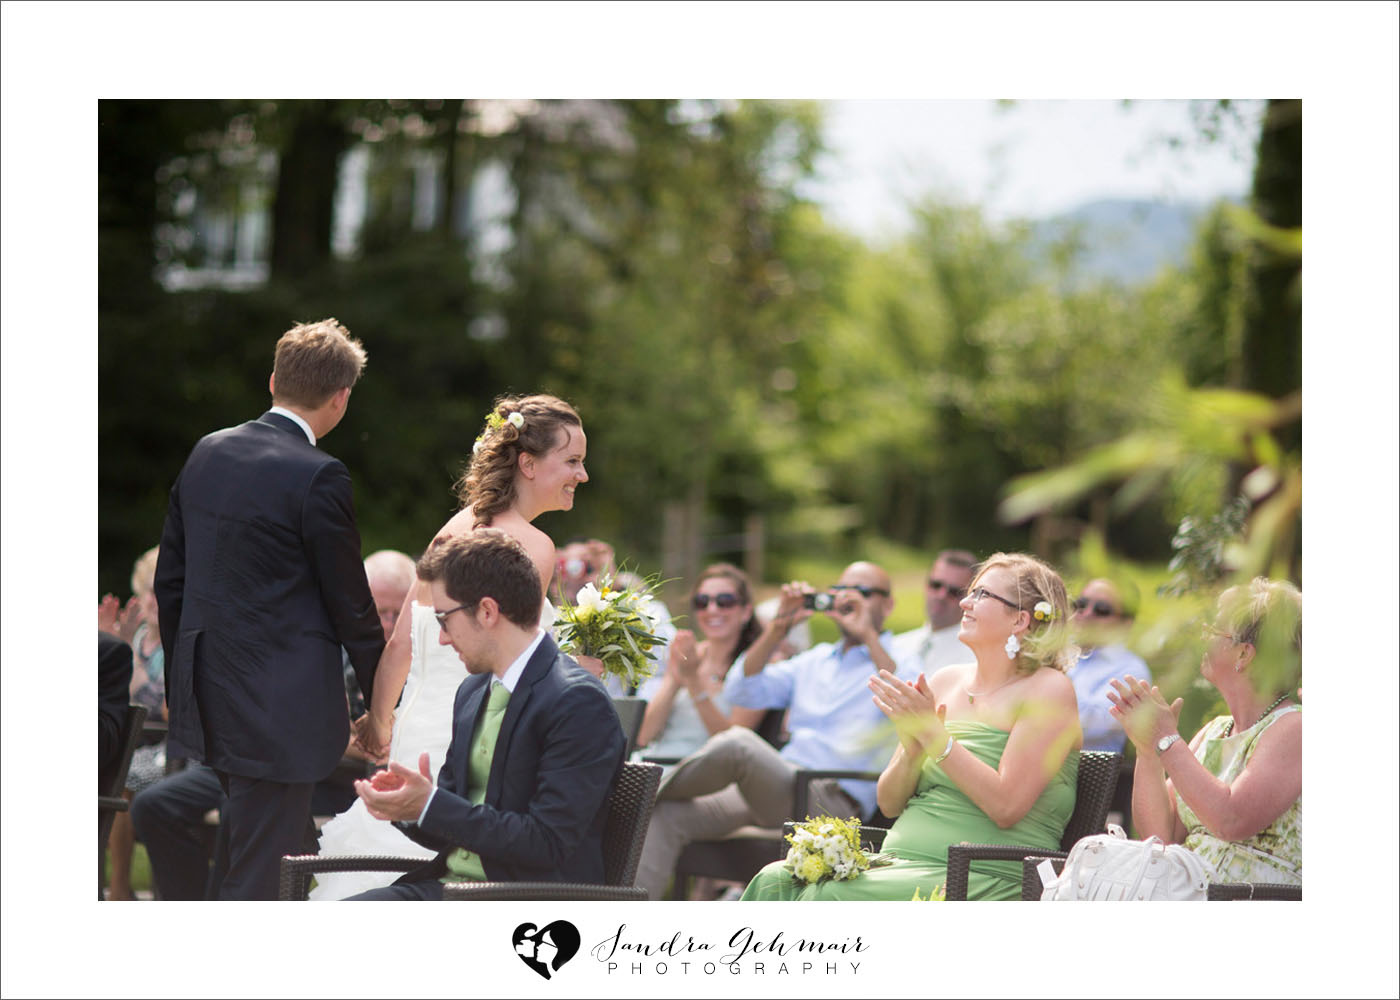 034_heiraten_am_see_spitzvilla_sandra_gehmair